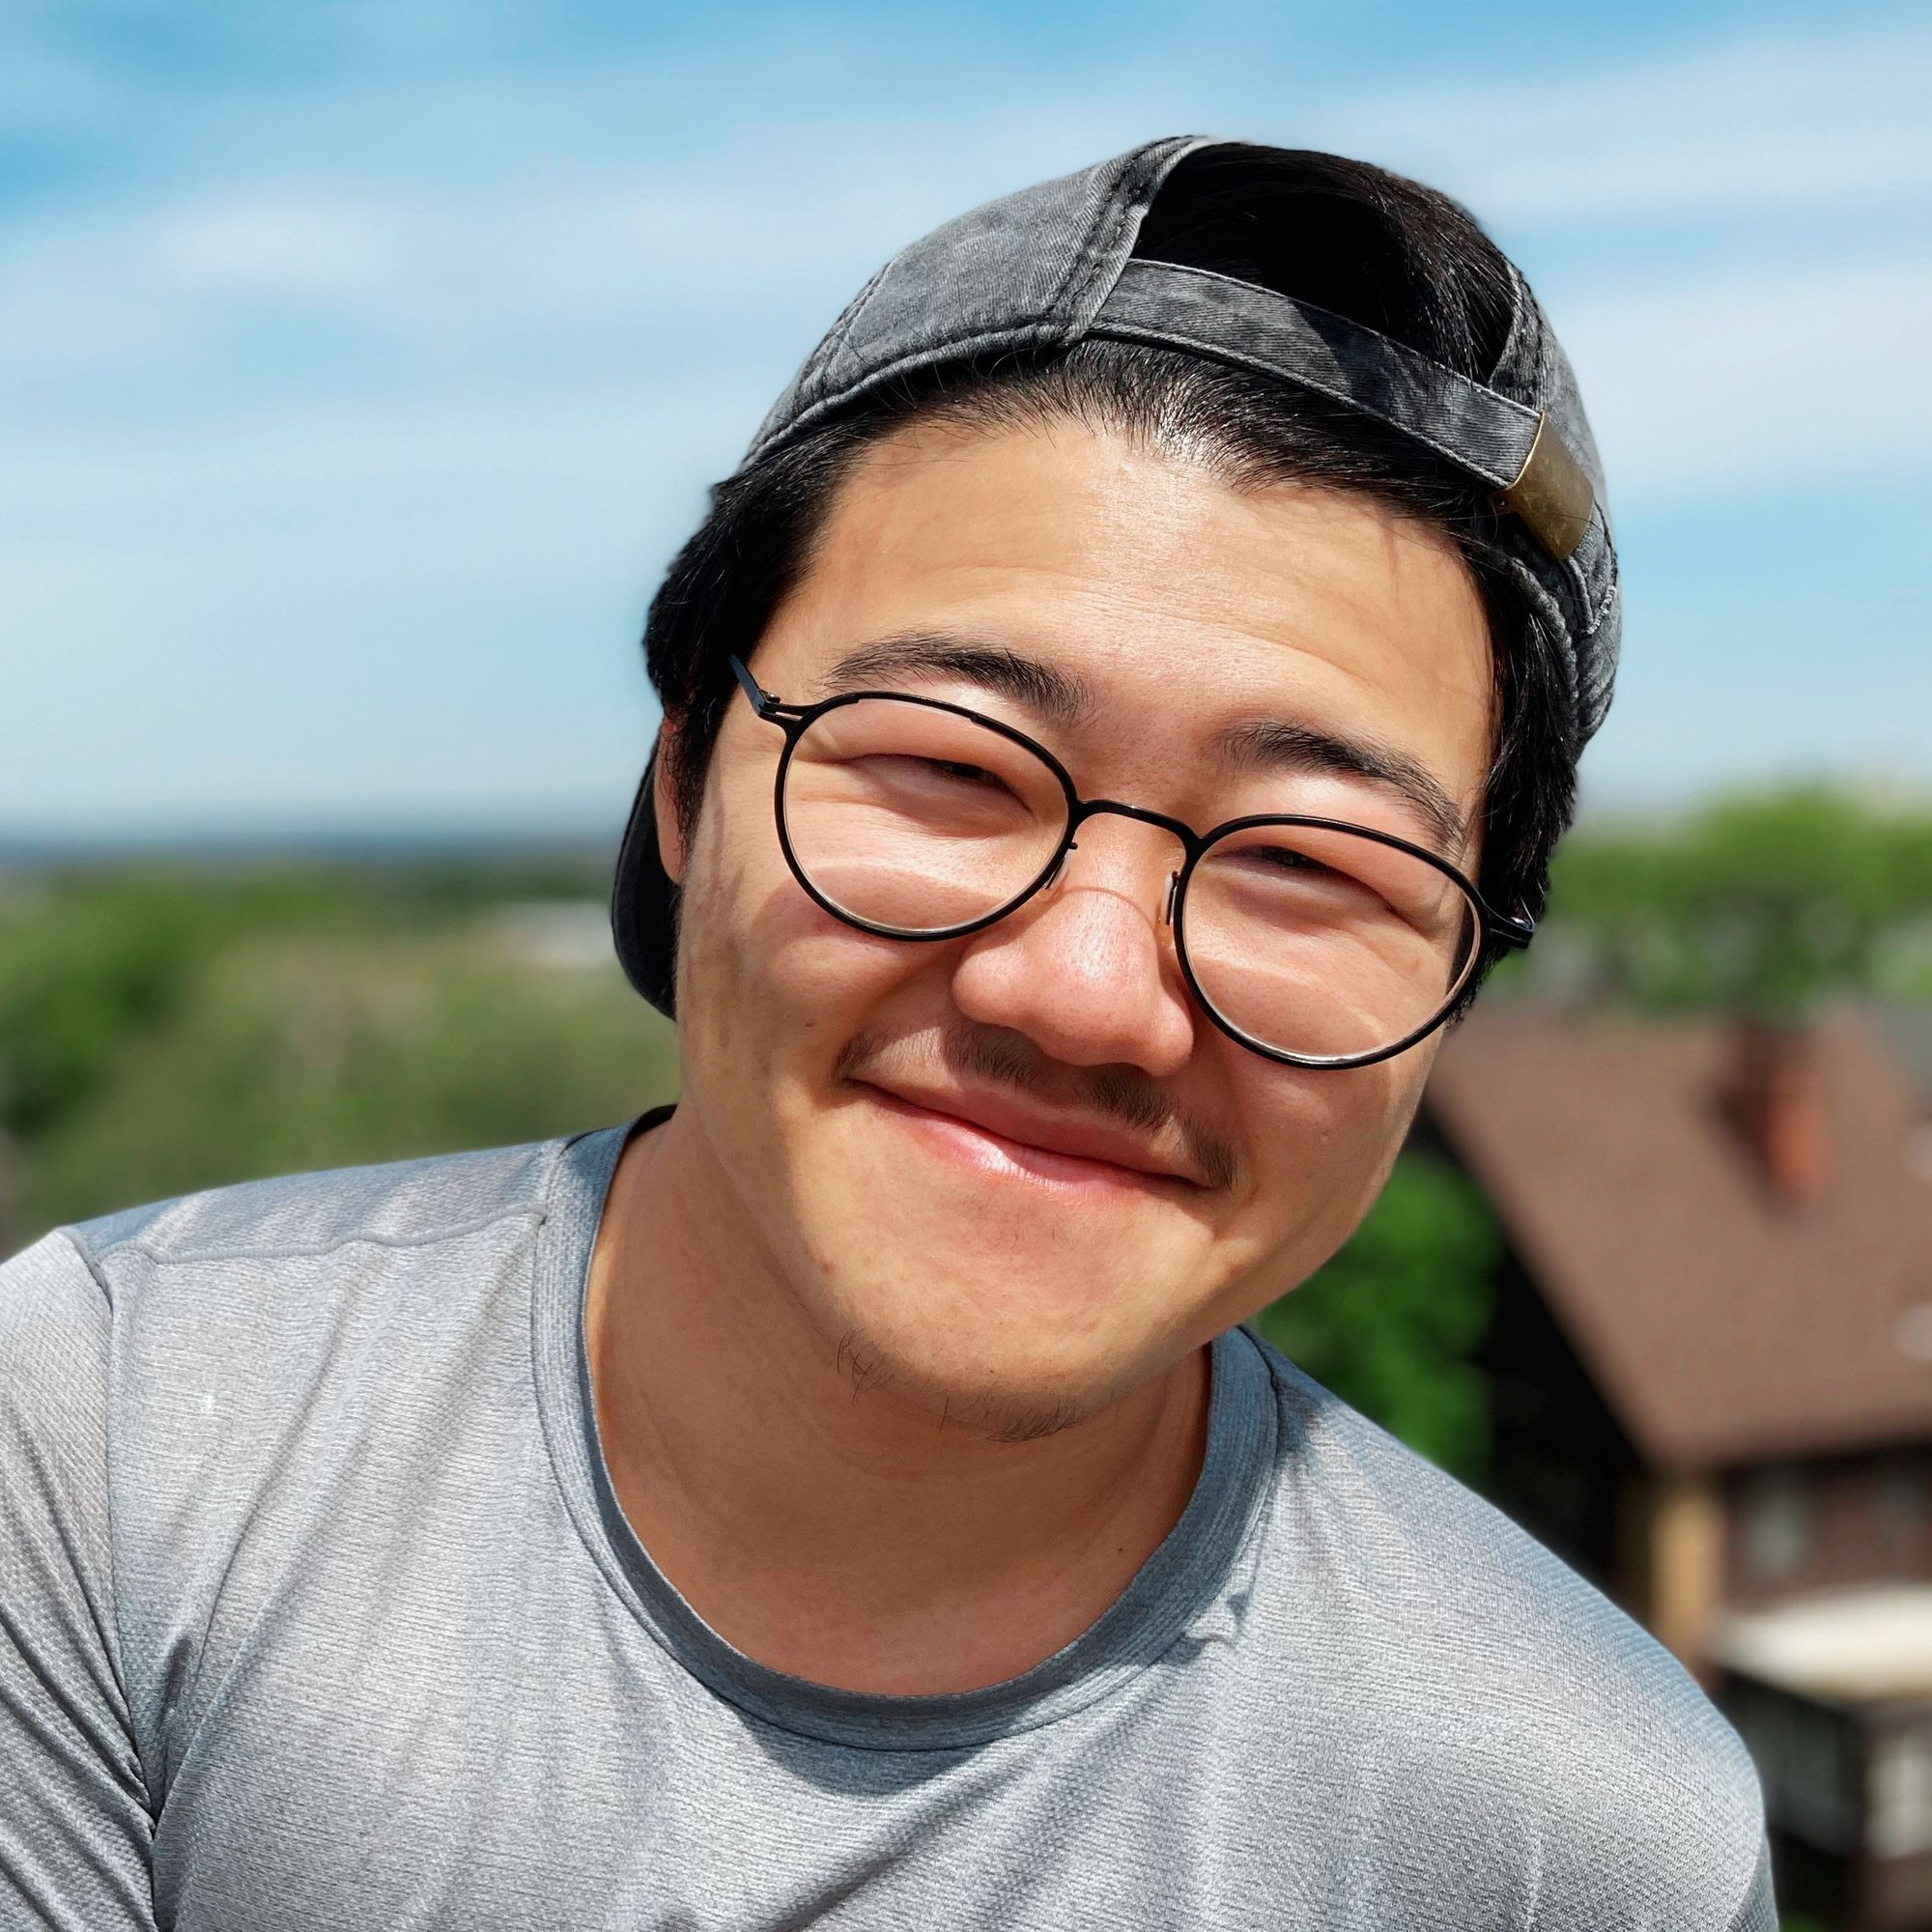 Photo: A headshot of me, Yanyi, from the chest up in front of high-rise view looking over a residential part of a city. I'm wearing a grey baseball cap backwards and a grey athletic shirt. I have short black hair and am smiling into the camera on this sunny day!